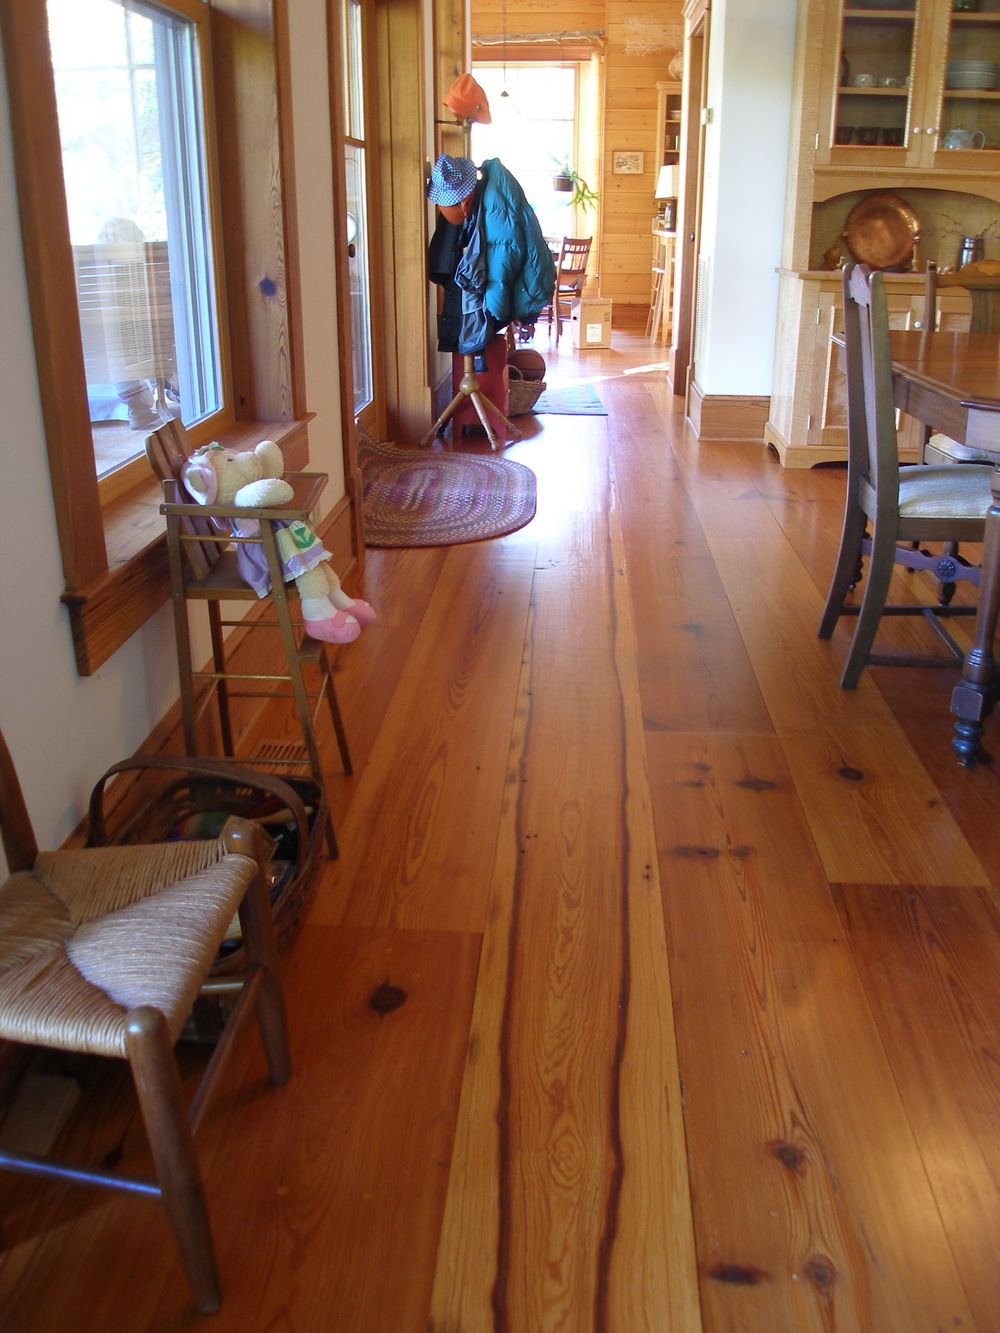 Special figure in wide heart pine floor boards.